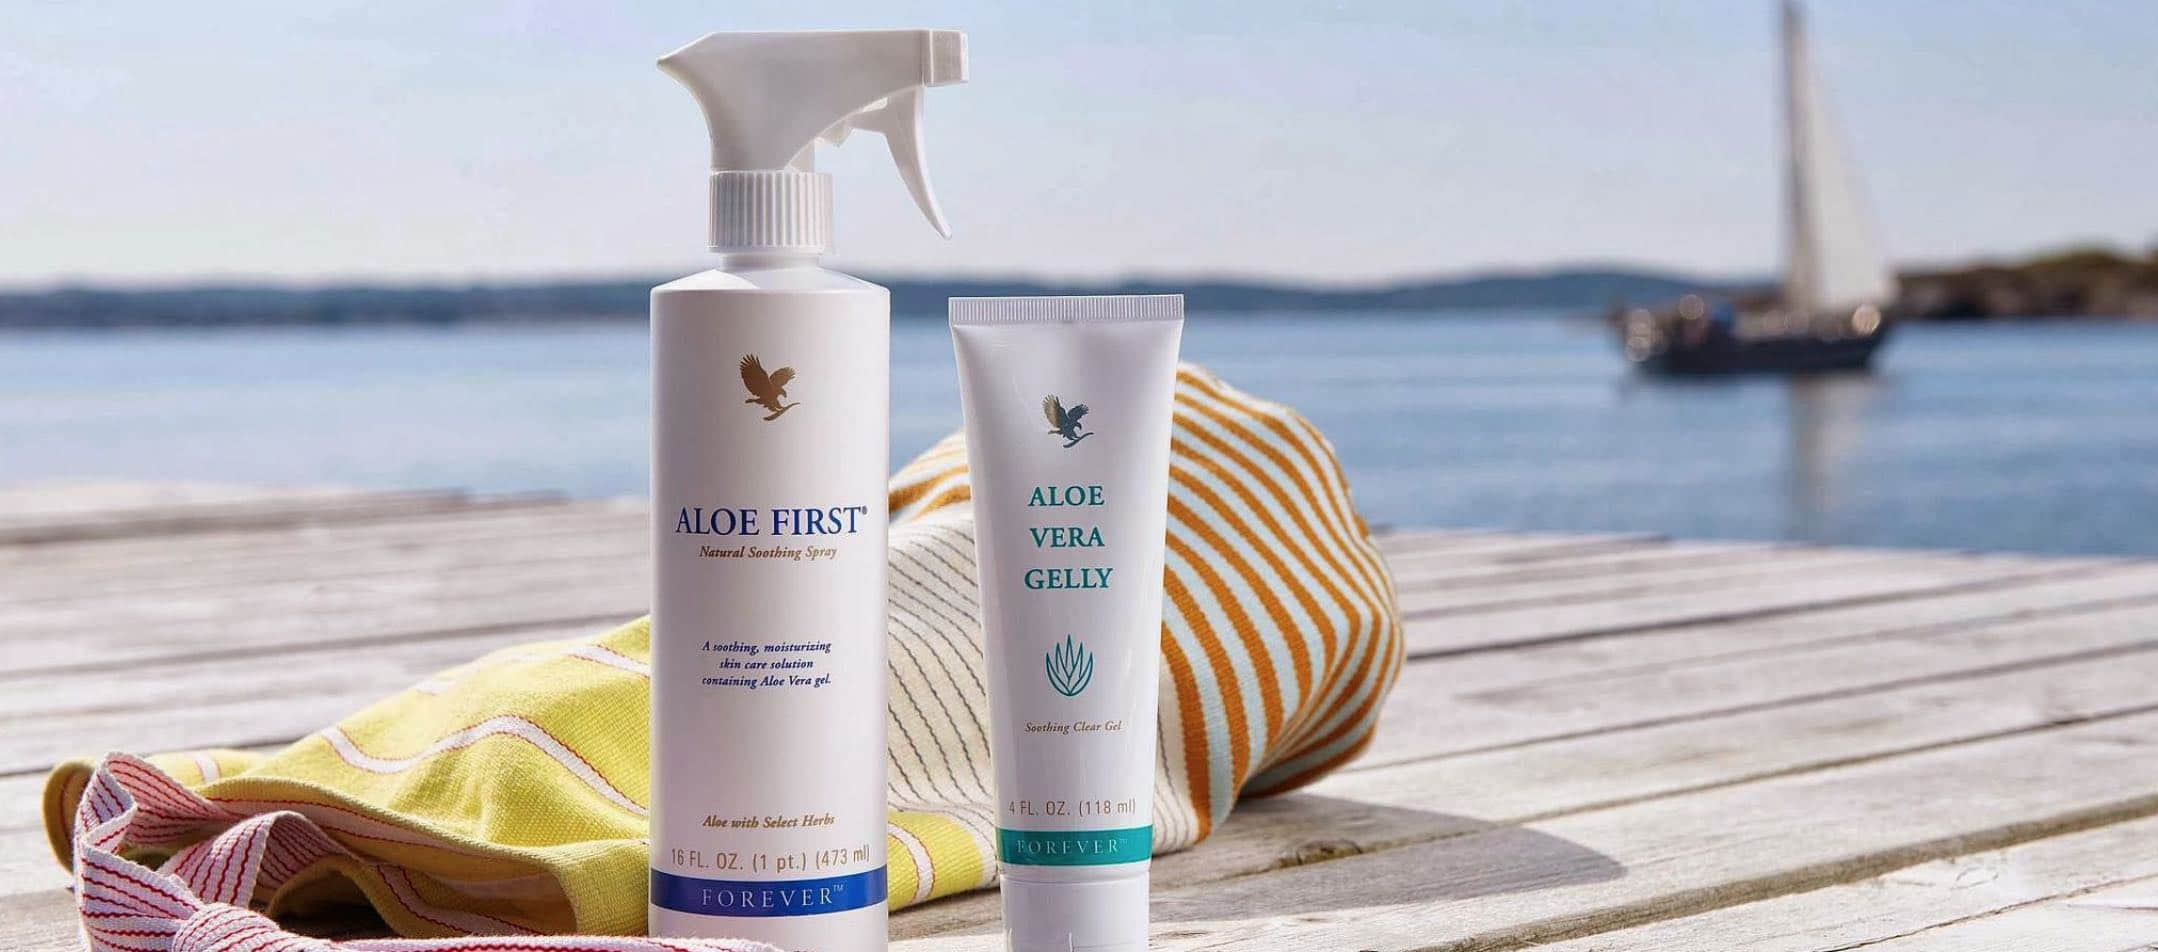 gel aloe vera forever, aloe gelly forever, aloe first forever, acheter aloe first, first forever living products